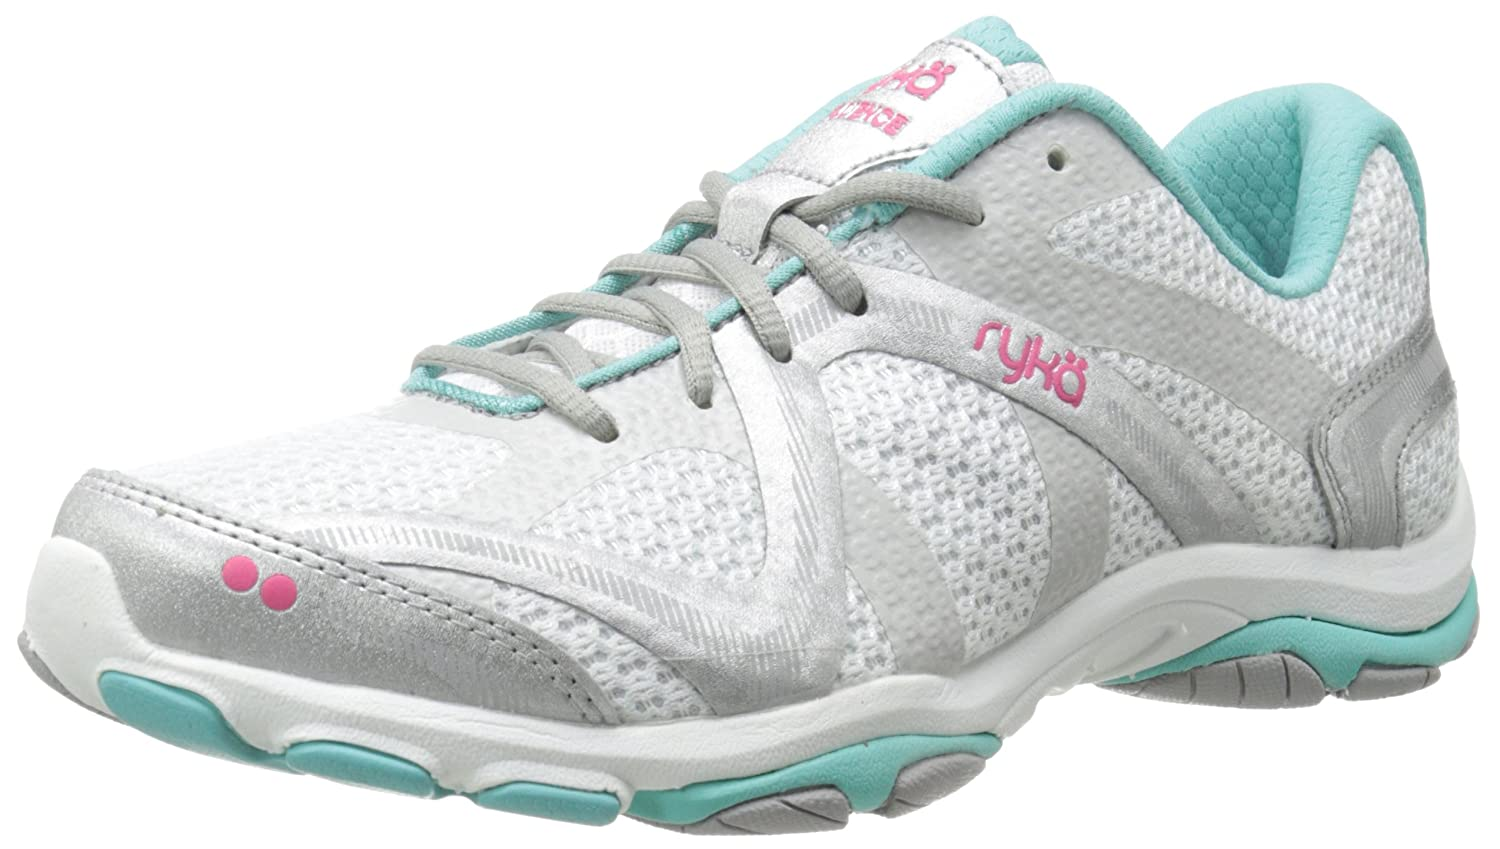 Ryka Women's Influence Cross Training Shoe B00MFXAN8E 9.5 B(M) US|Influence/White/Aqua/Pink